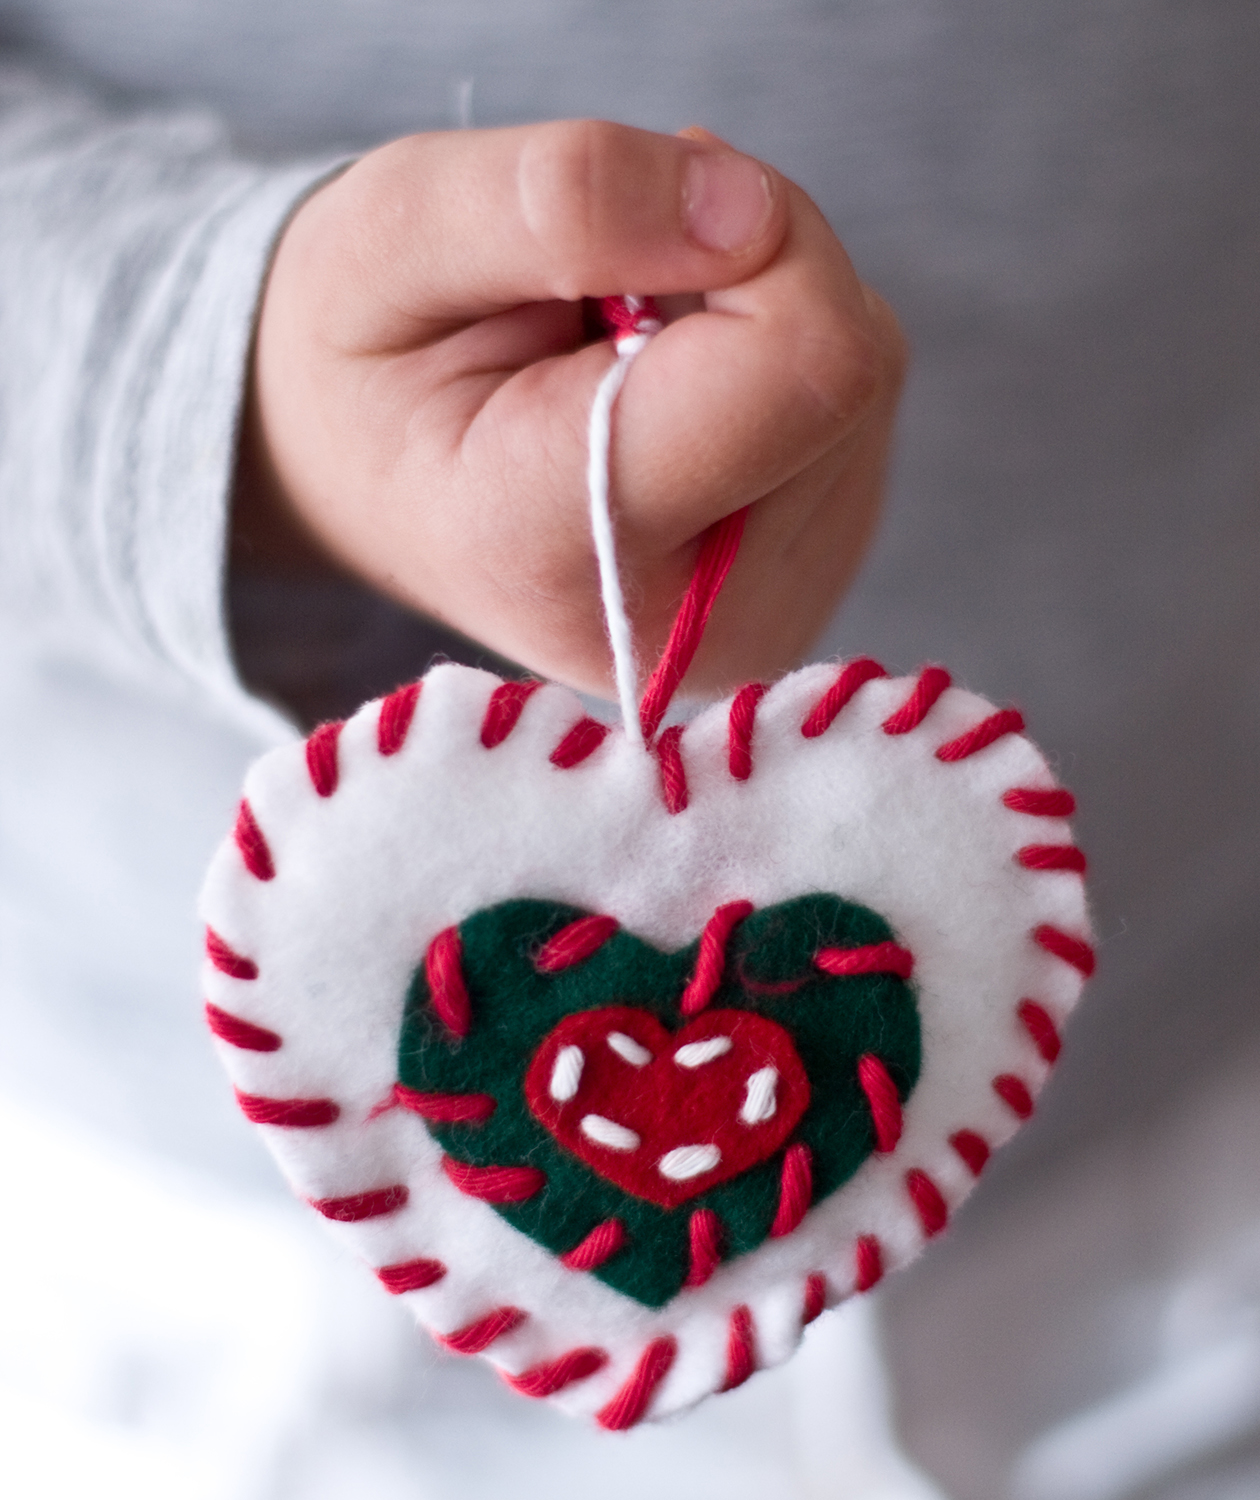 Child with homemade heart ornament